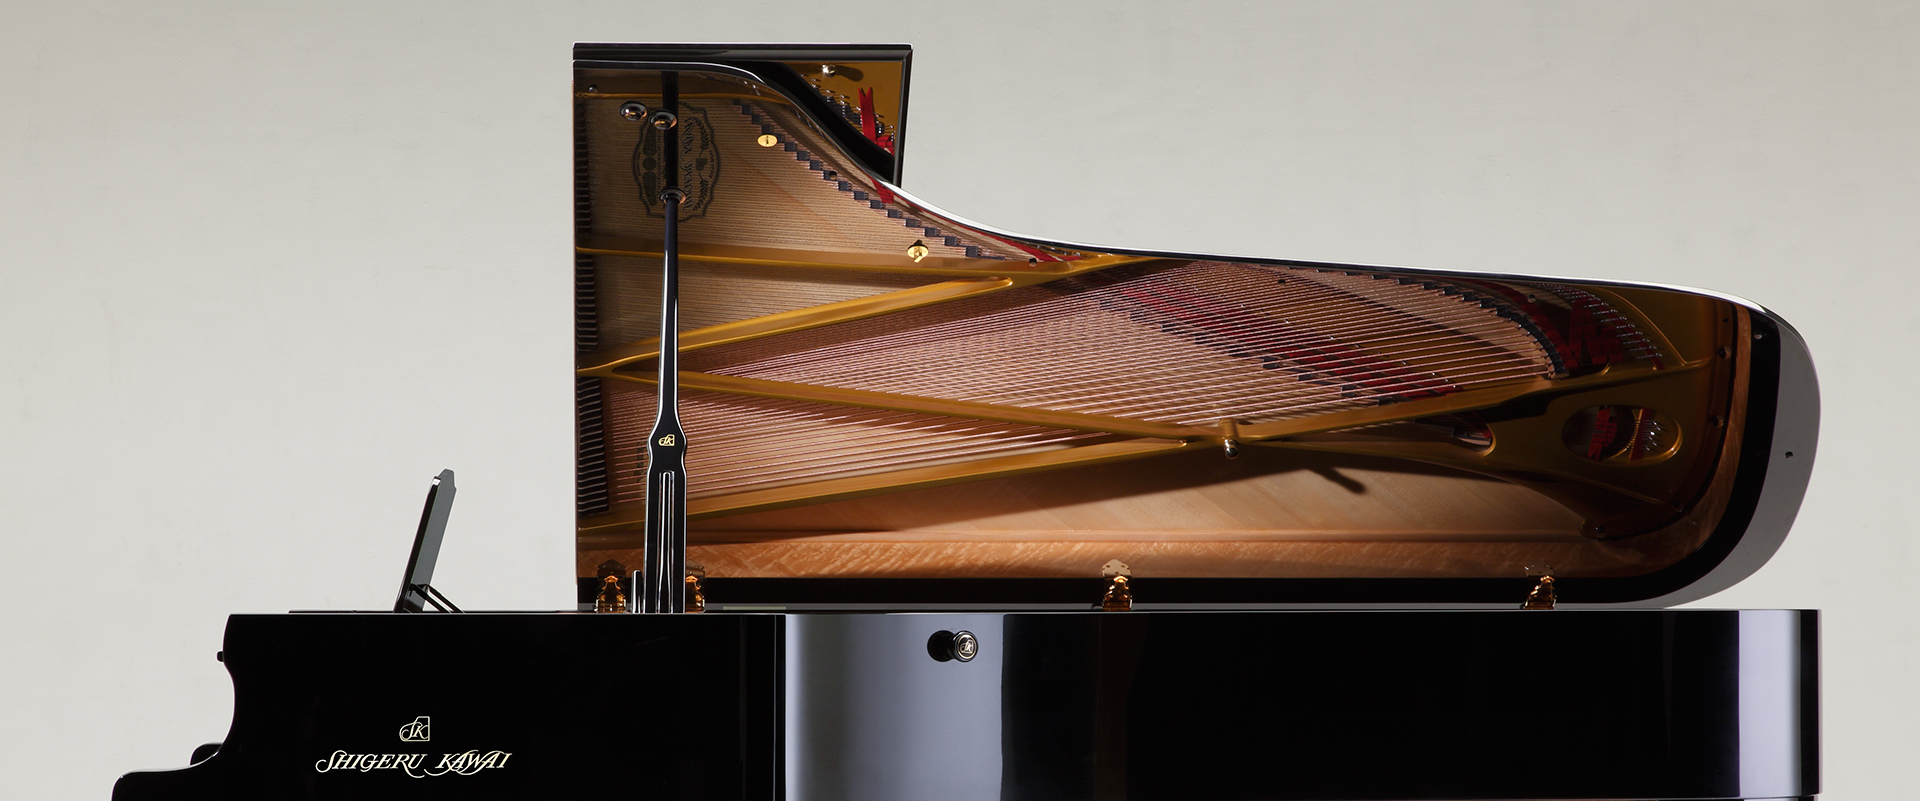 Shigeru Pianos for Sale in the Bay Area